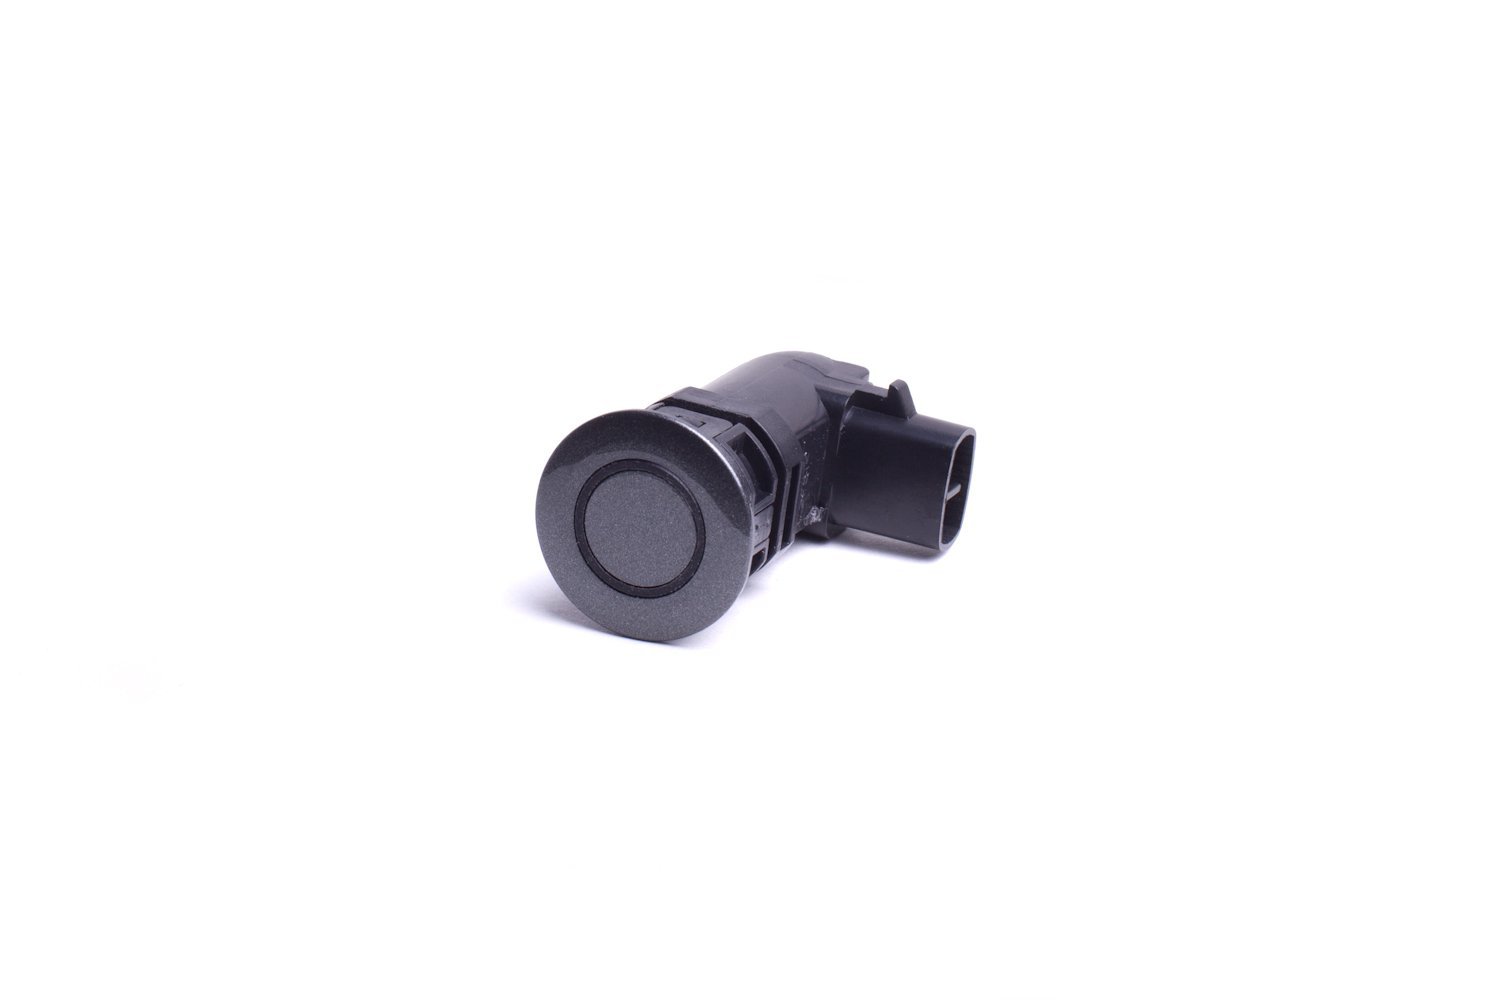 Electronicx Auto PDC Parksensor Ultraschall Sensor Parktronic Parksensoren Parkhilfe Parkassistent GS1D-67UC1A Electronicx GmbH